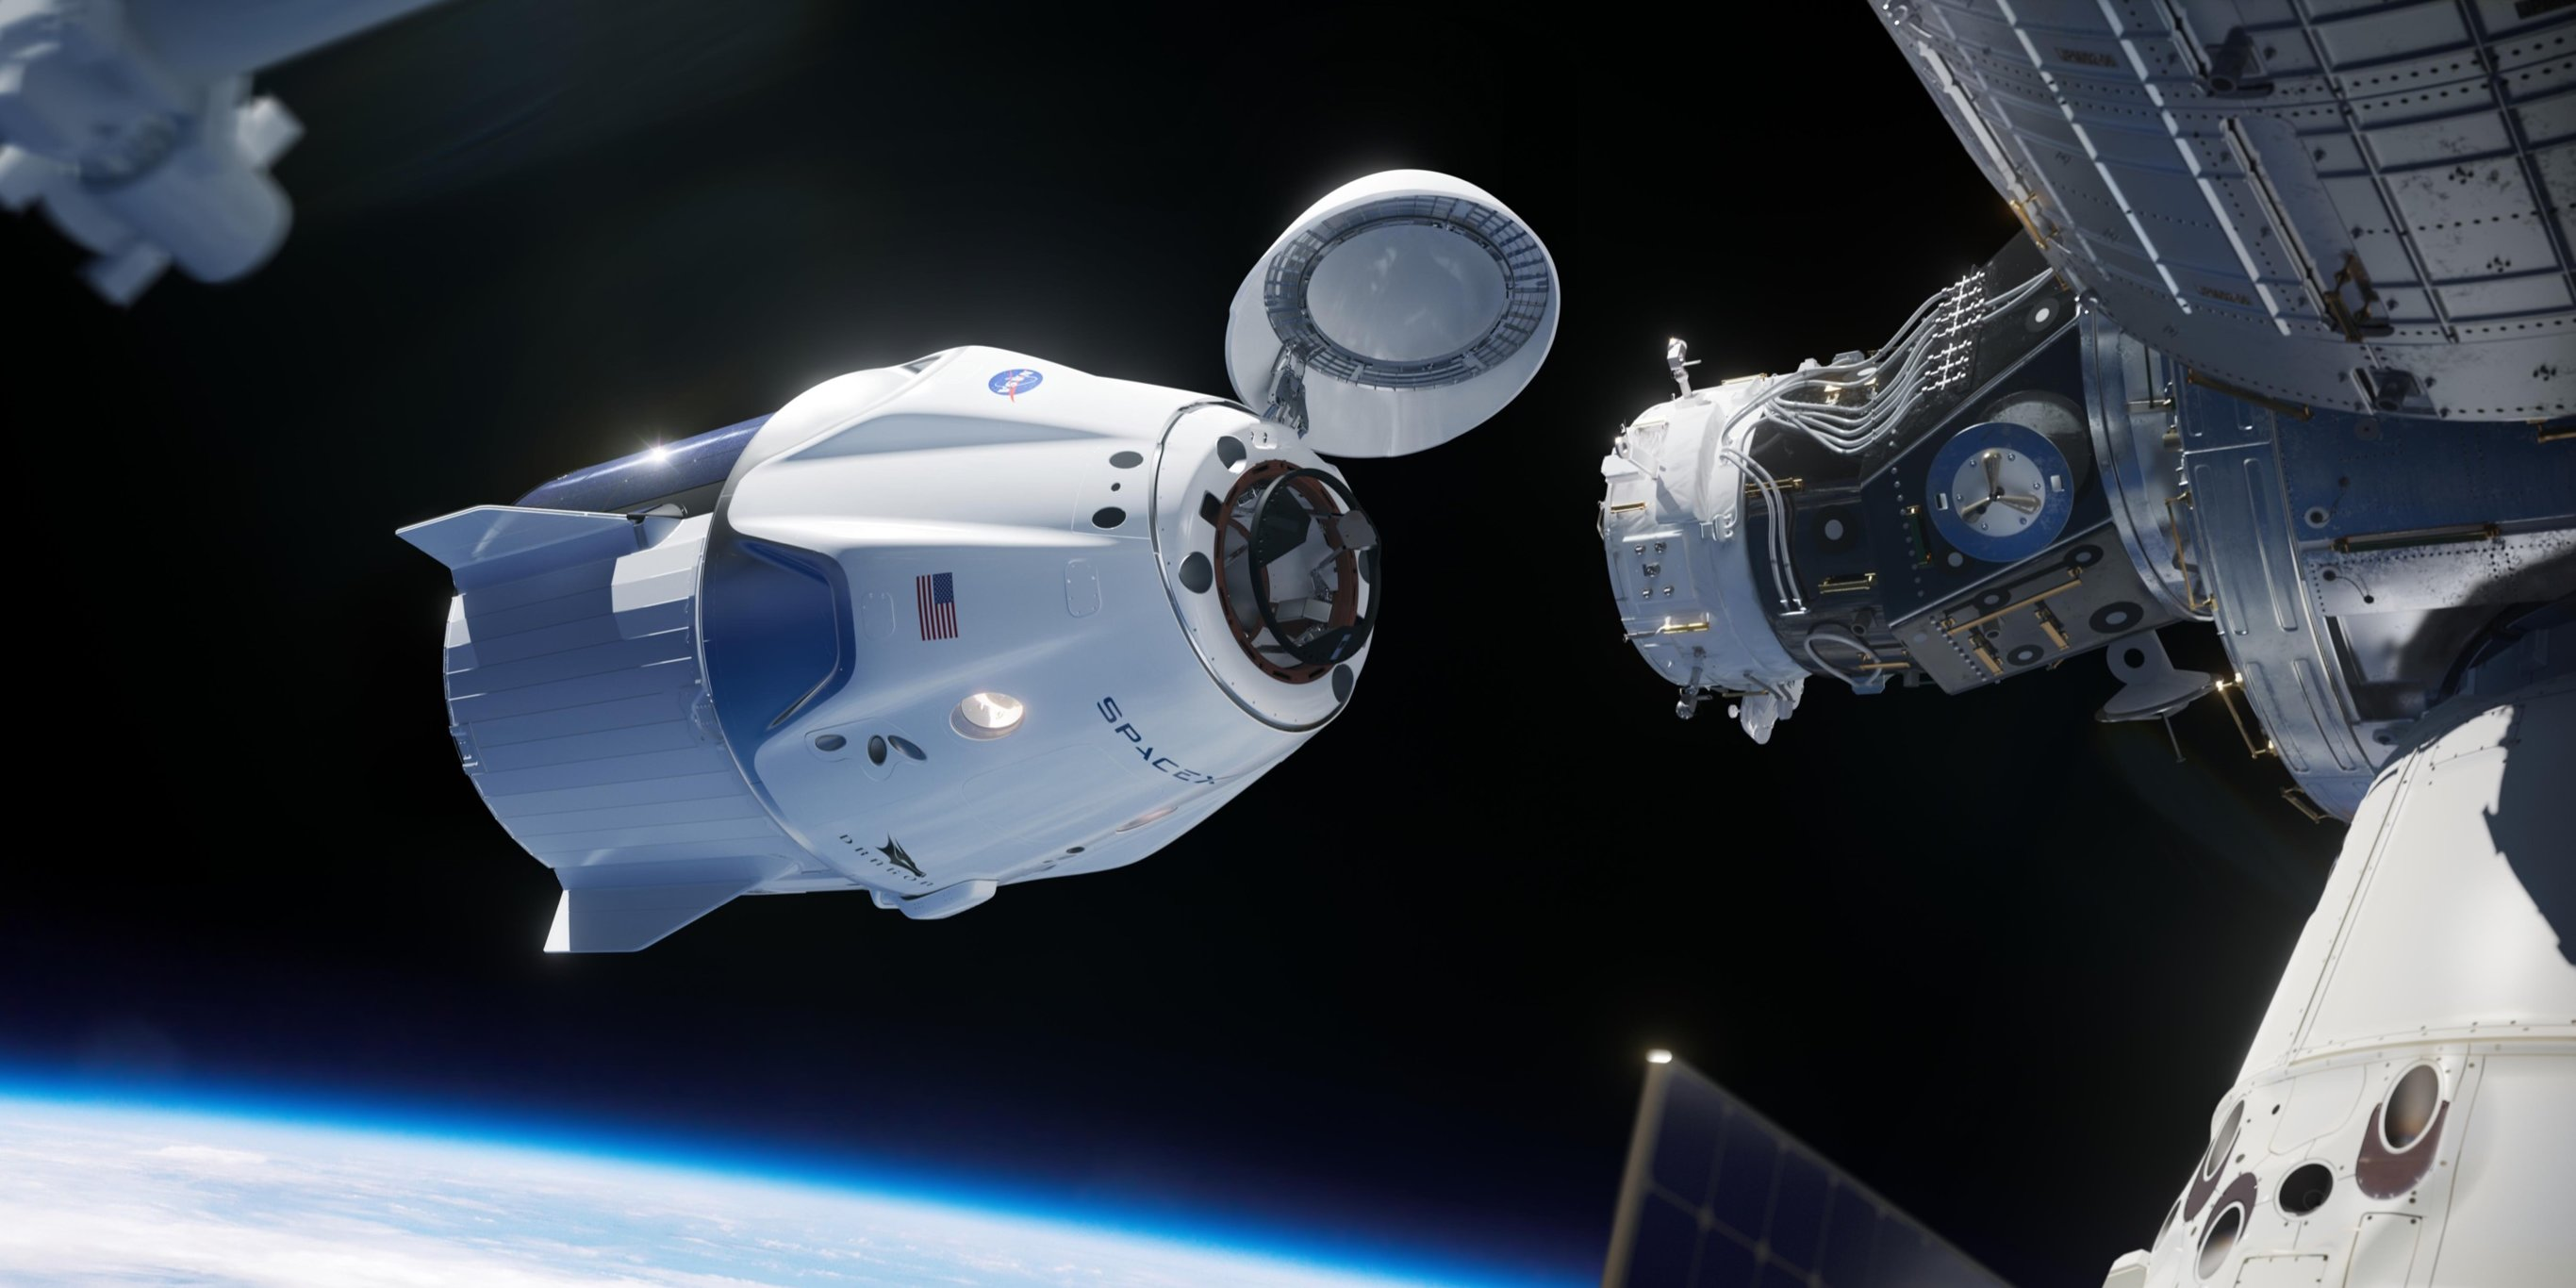 The SpaceX Crew Dragon Team Nails Their First Major Milestones - Next Stop: A Crewed U.S. Space Mission